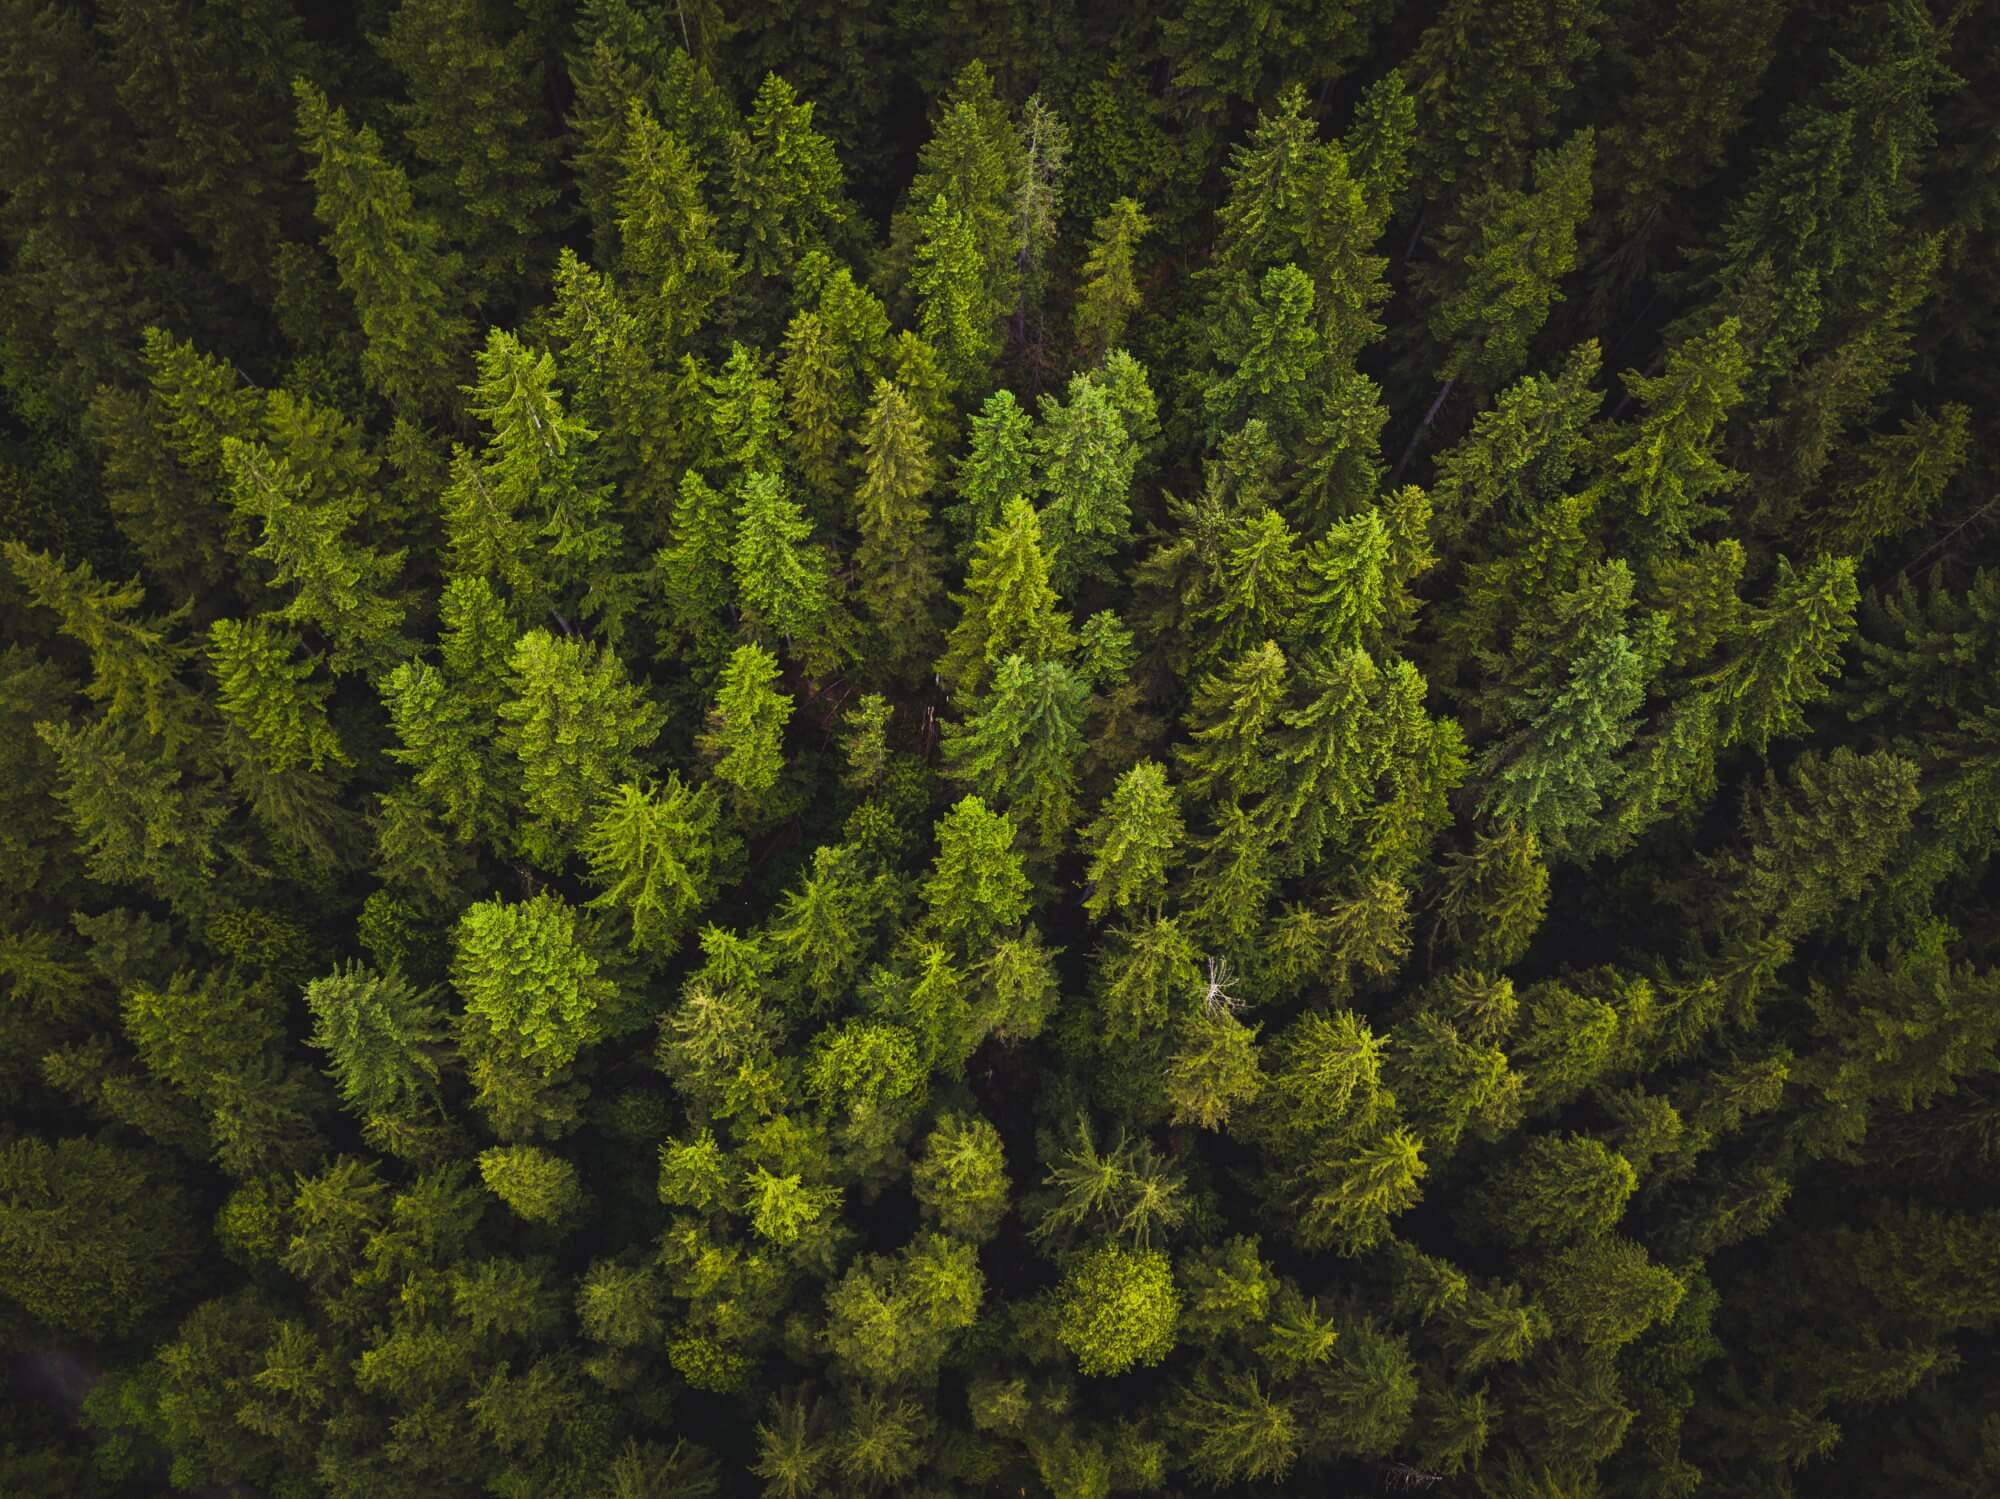 Trees emit greenhouse gases can accelerate global warming